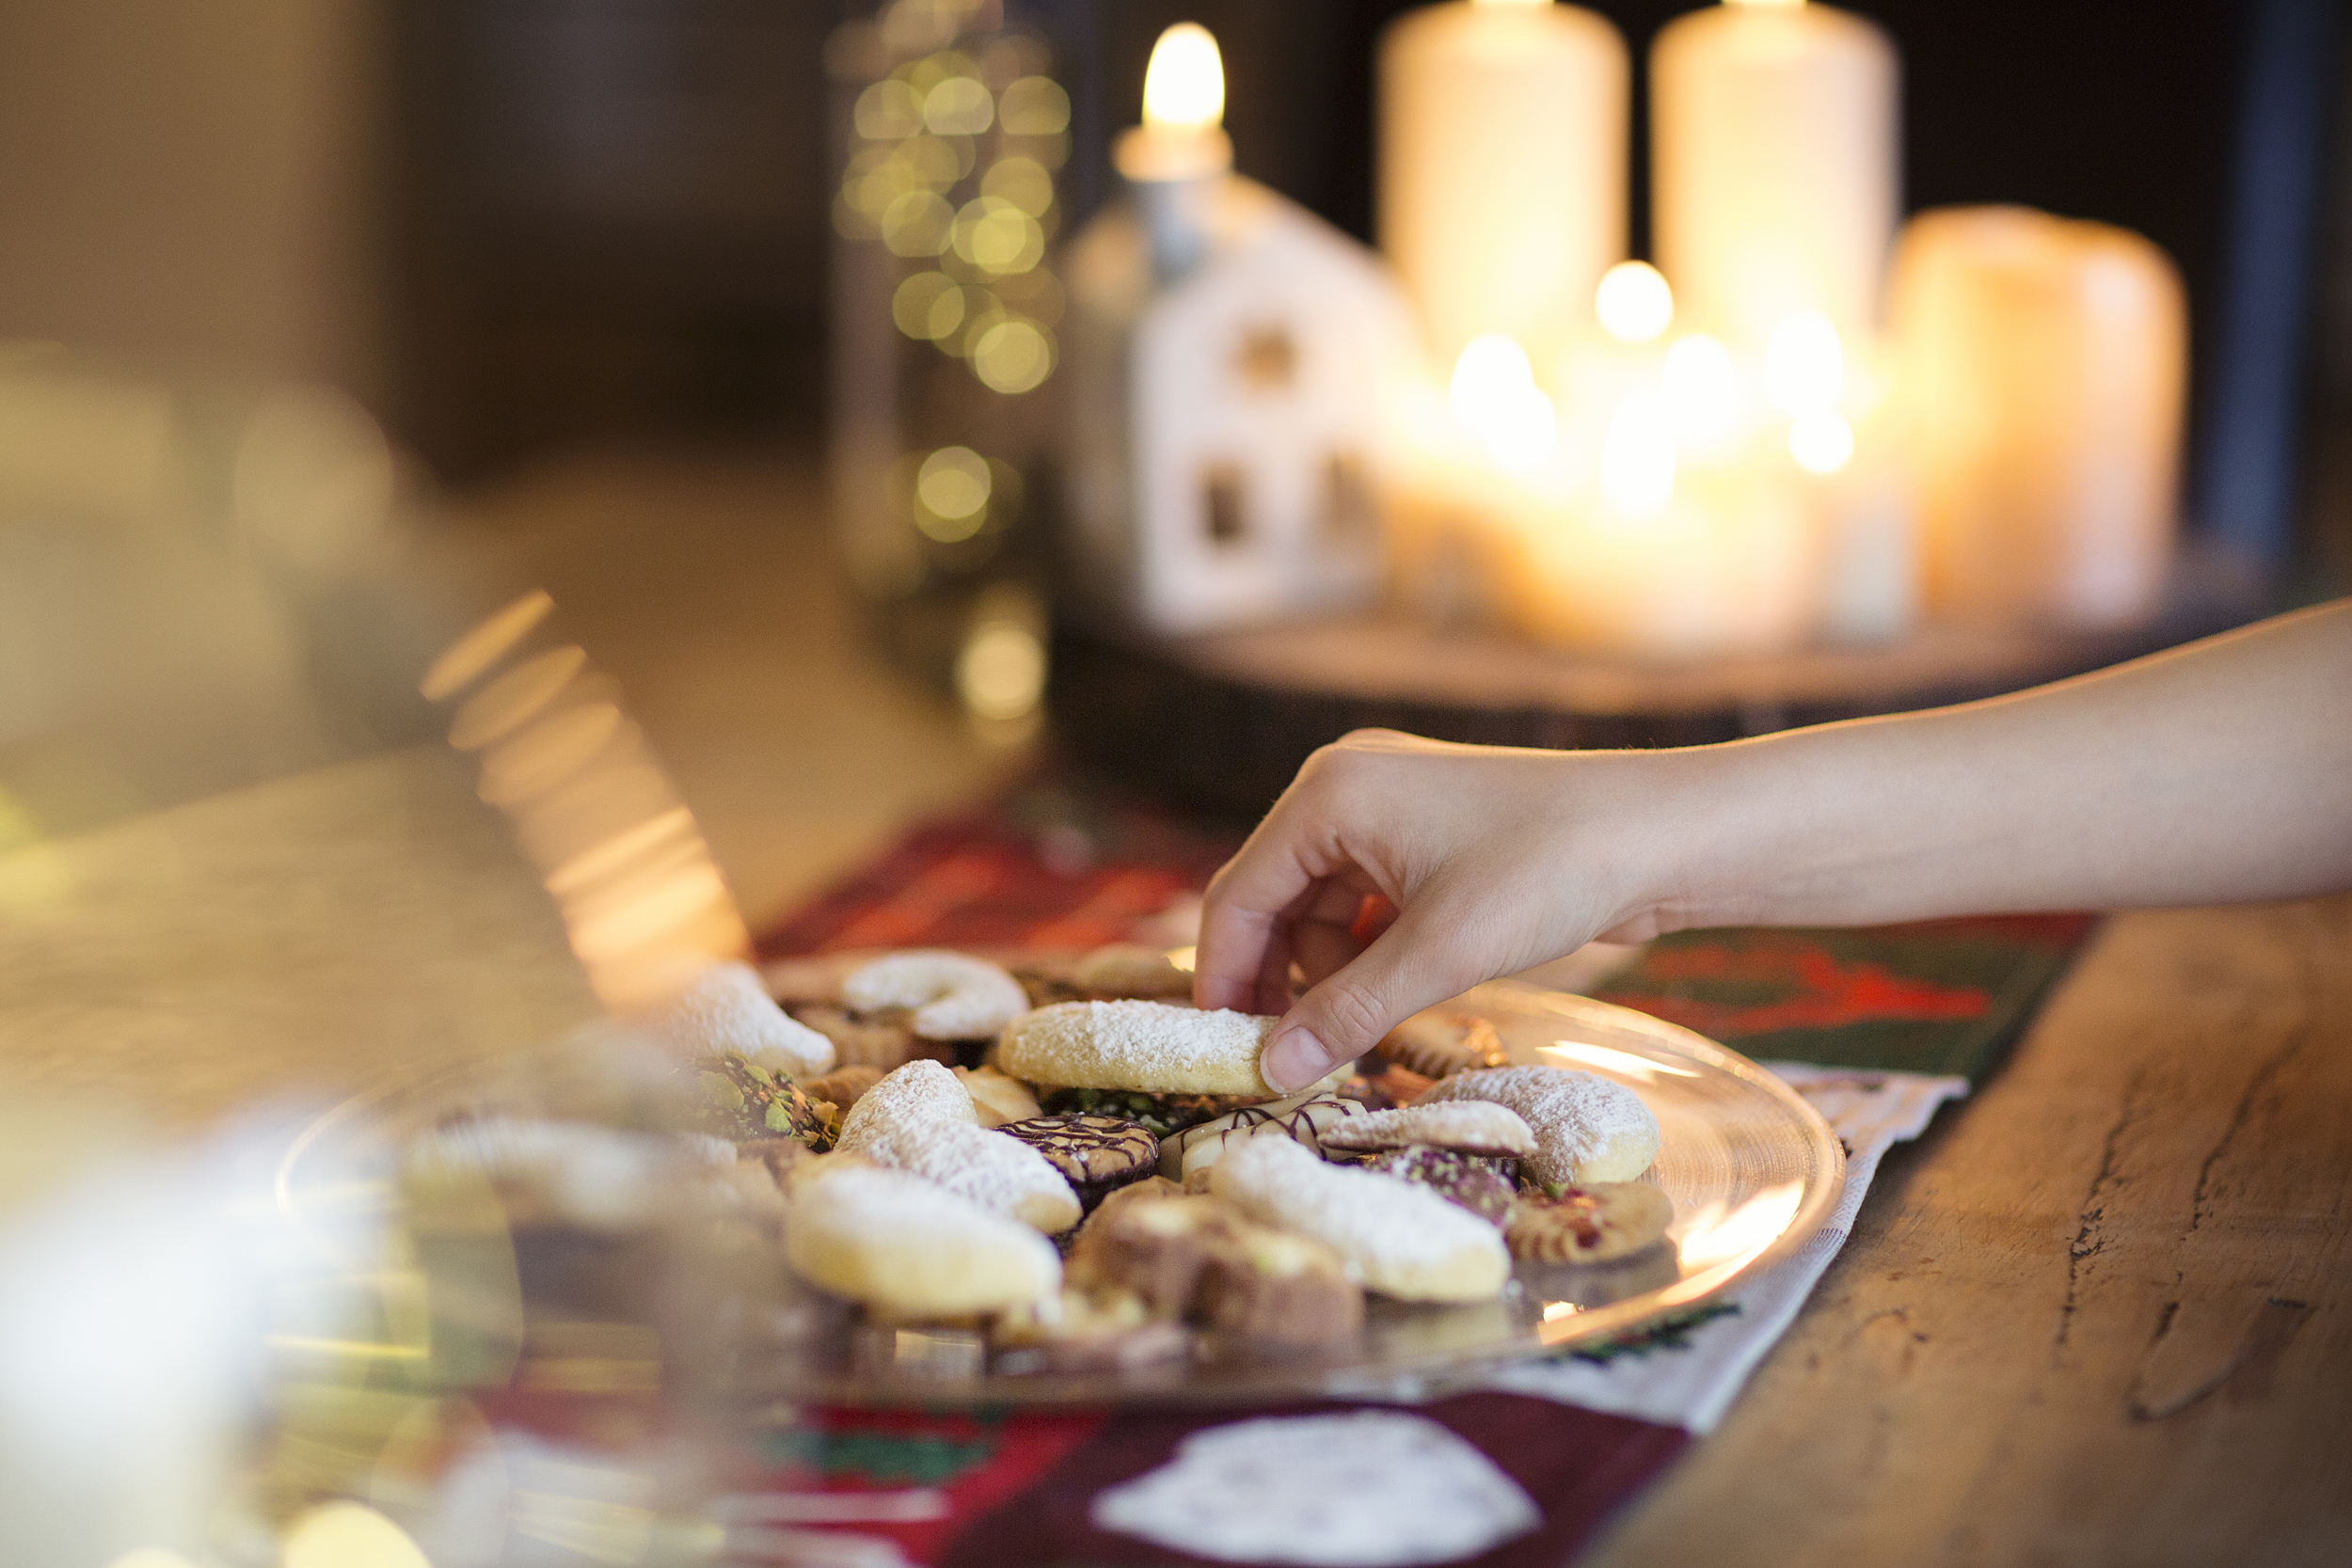 Here are some mental tricks to help you avoid holiday weight gain